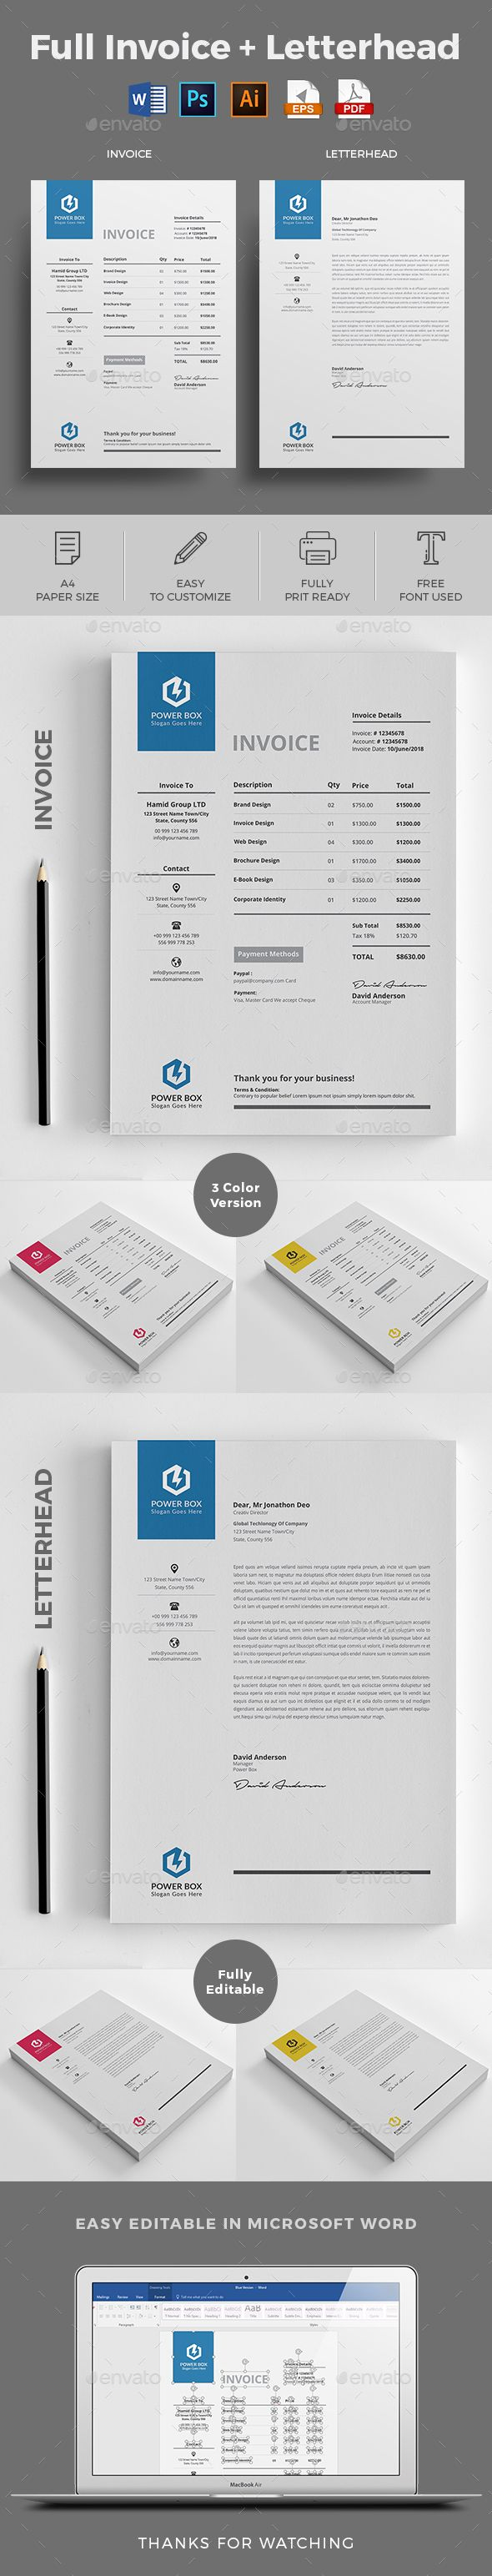 Invoice with Letterhead by jpixel55 INVOICE : This Clean Invoice will help you in your business to save time, organize you product data and customers info and easily